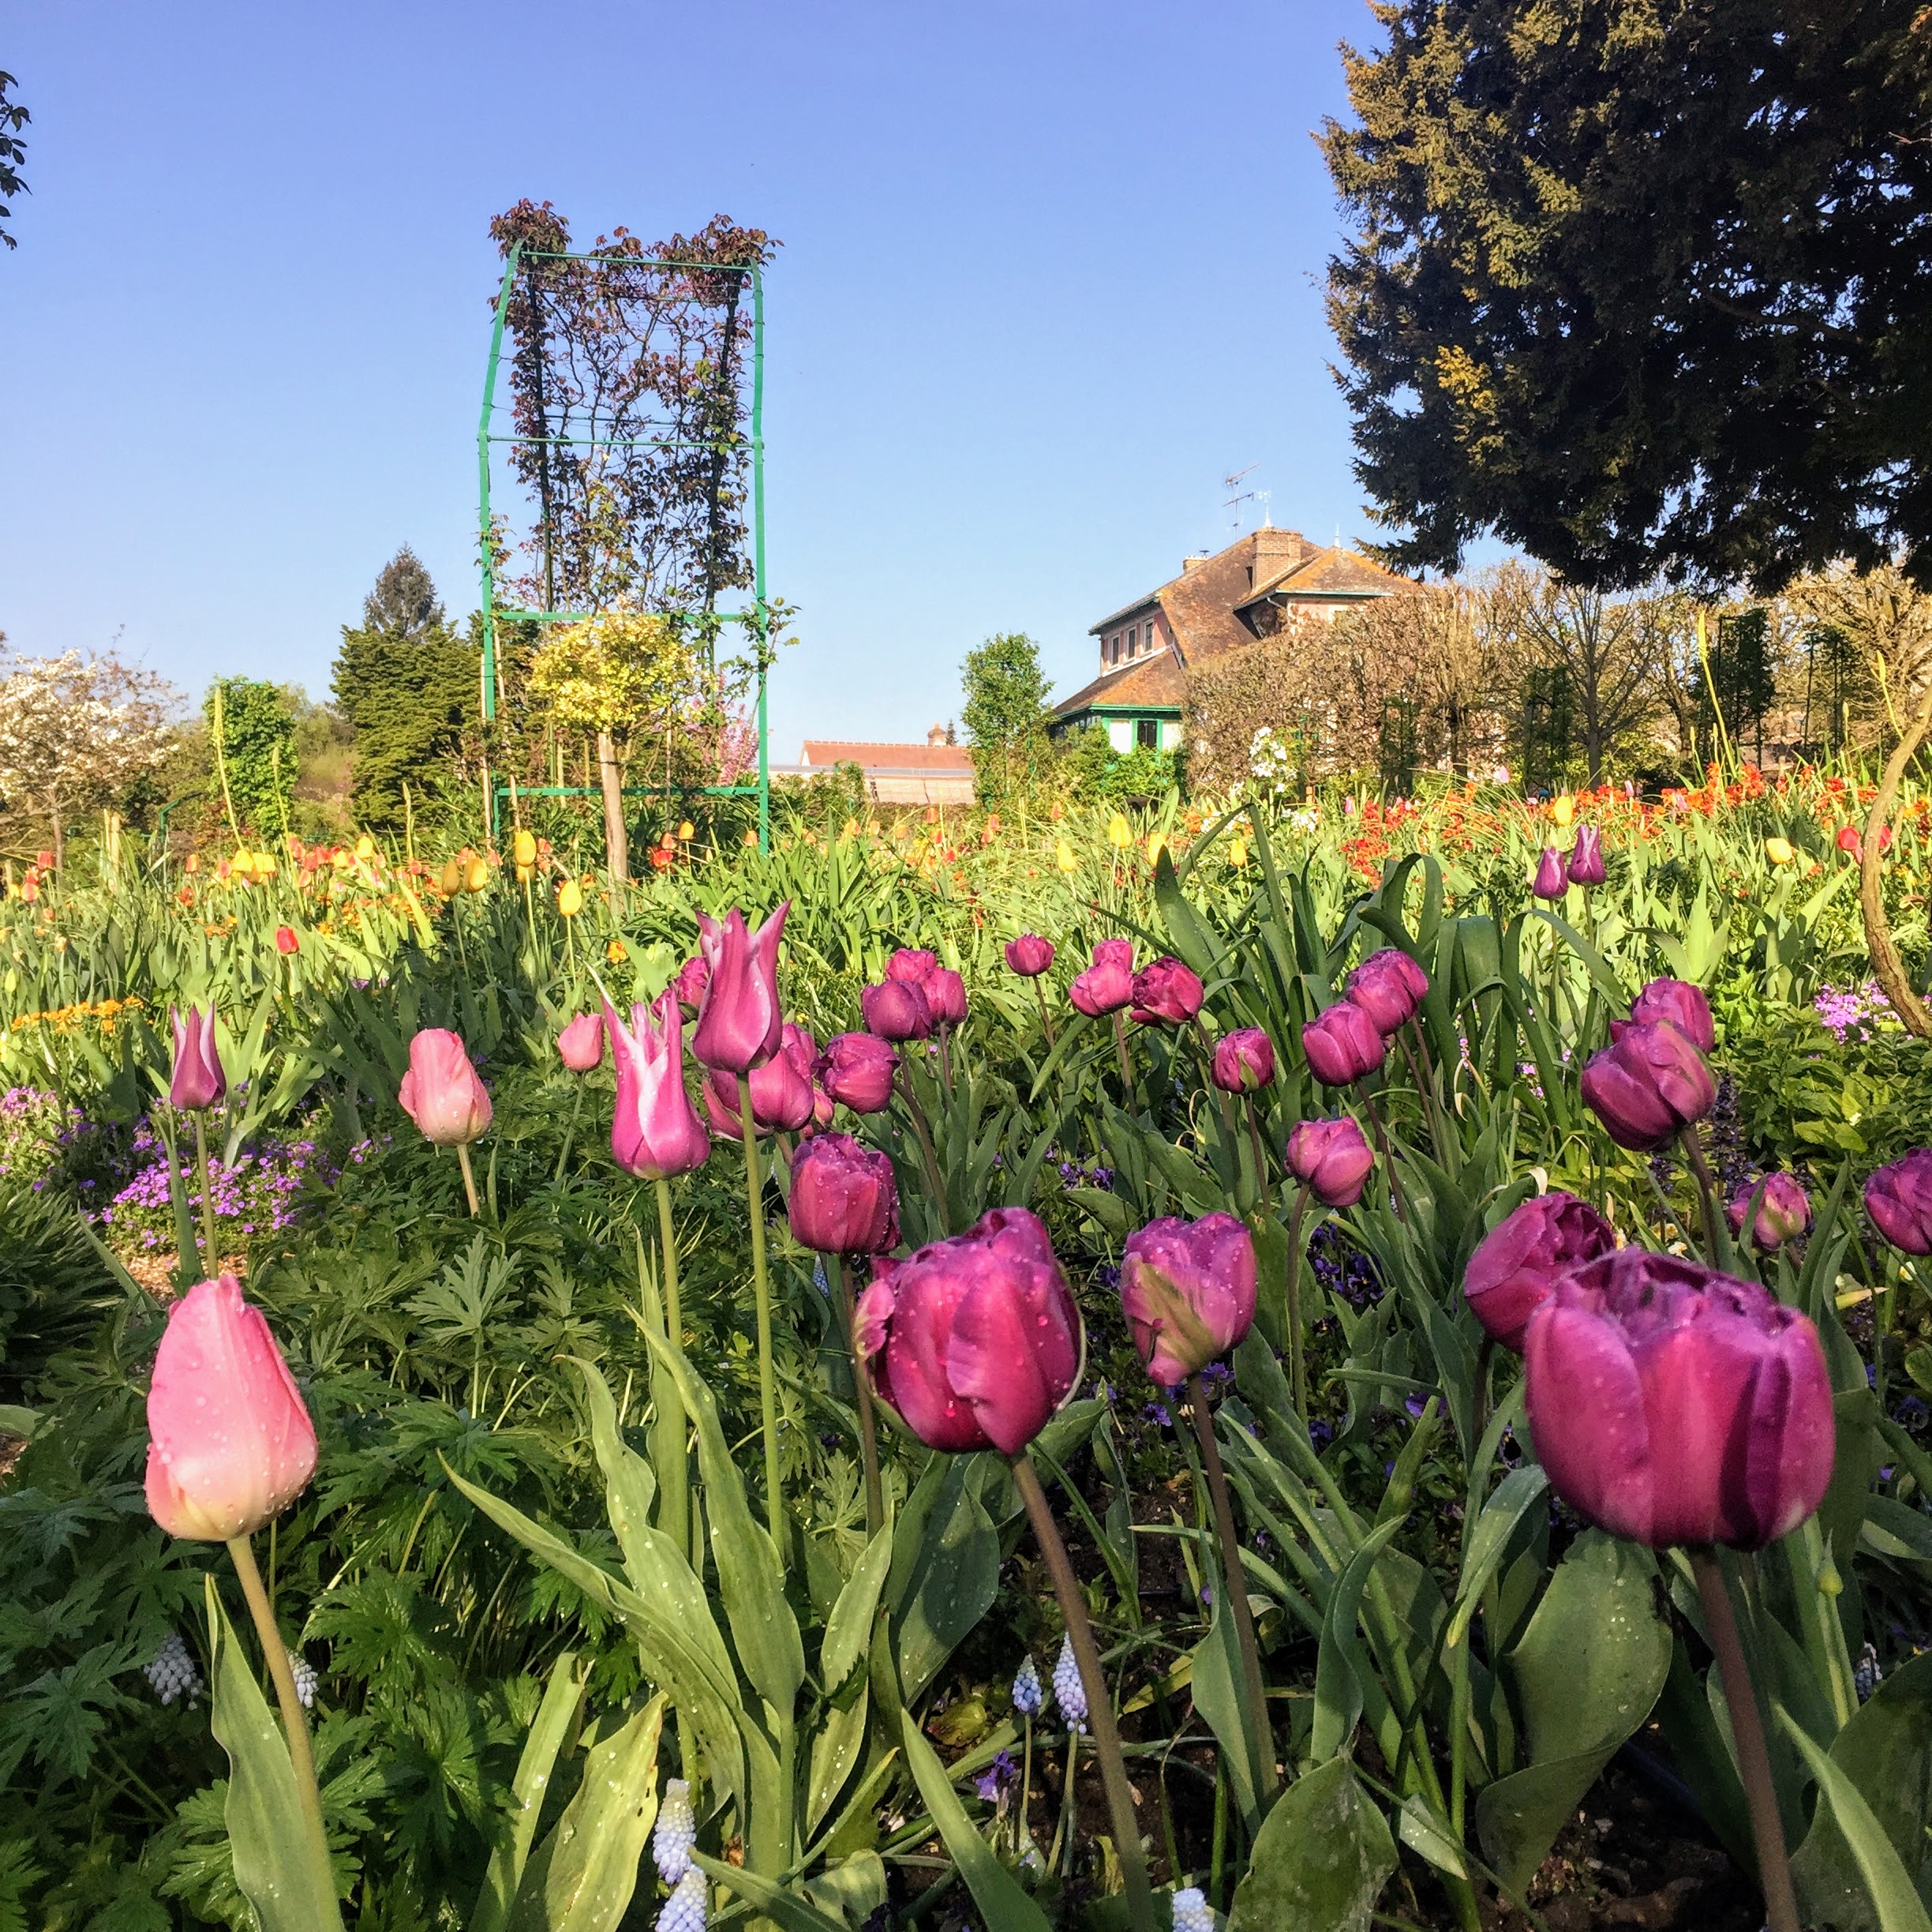 giverny april house tulips blooming